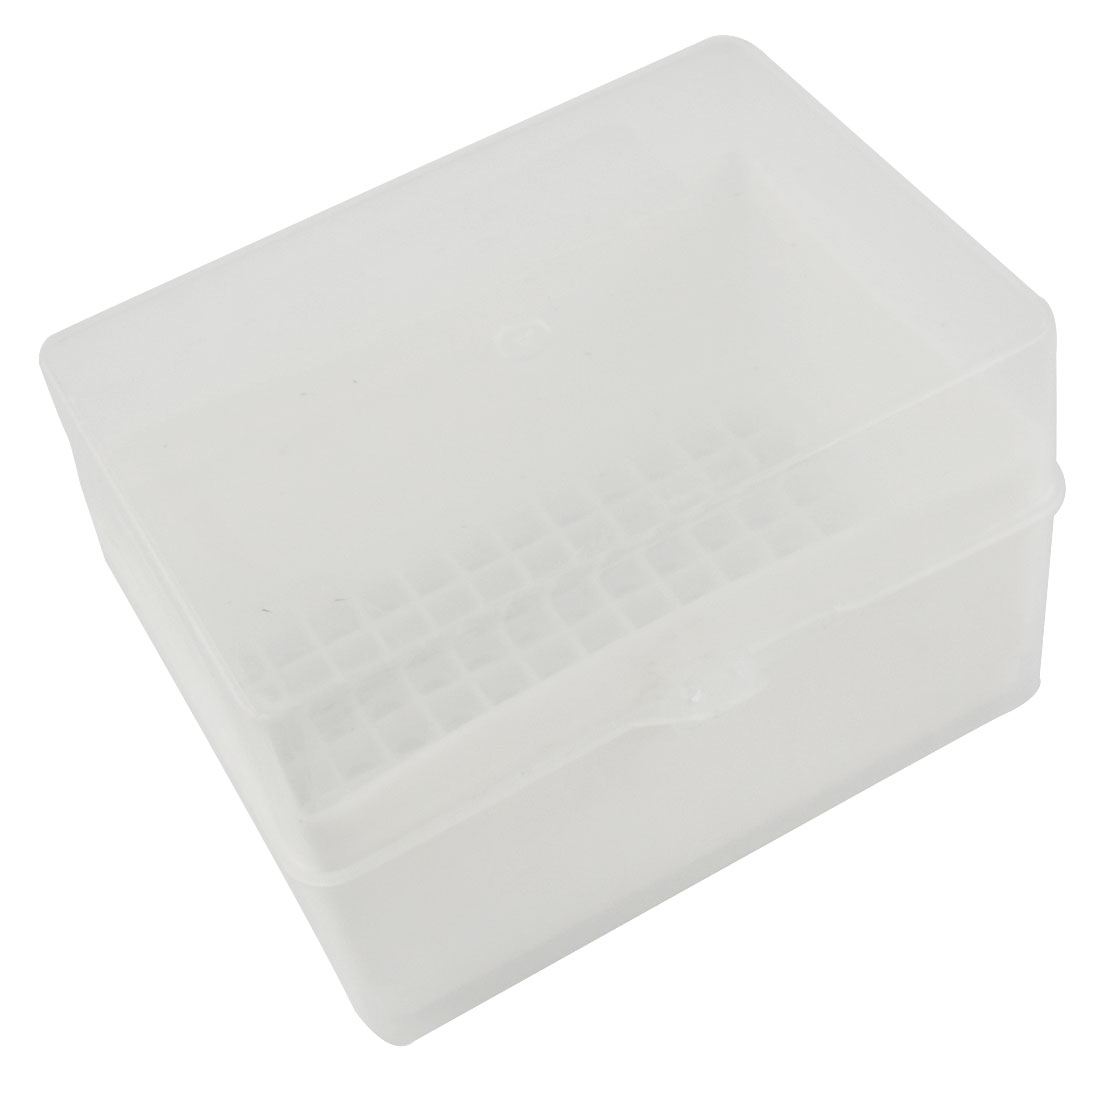 Laboratory 96 Positions 200uL Pipette Pipettor Tip Holder Box